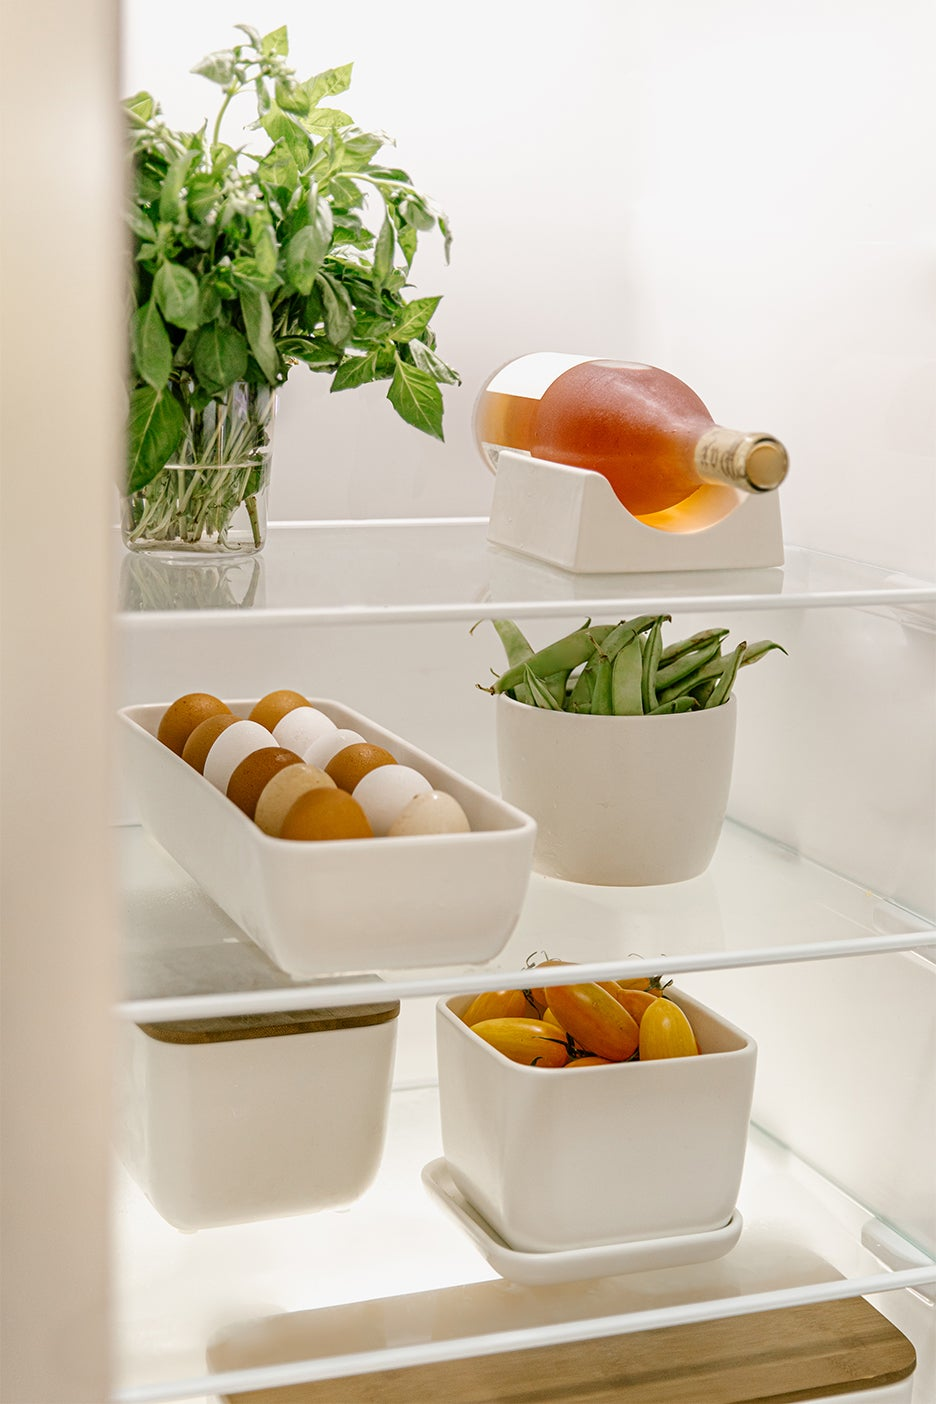 containers in a fridge